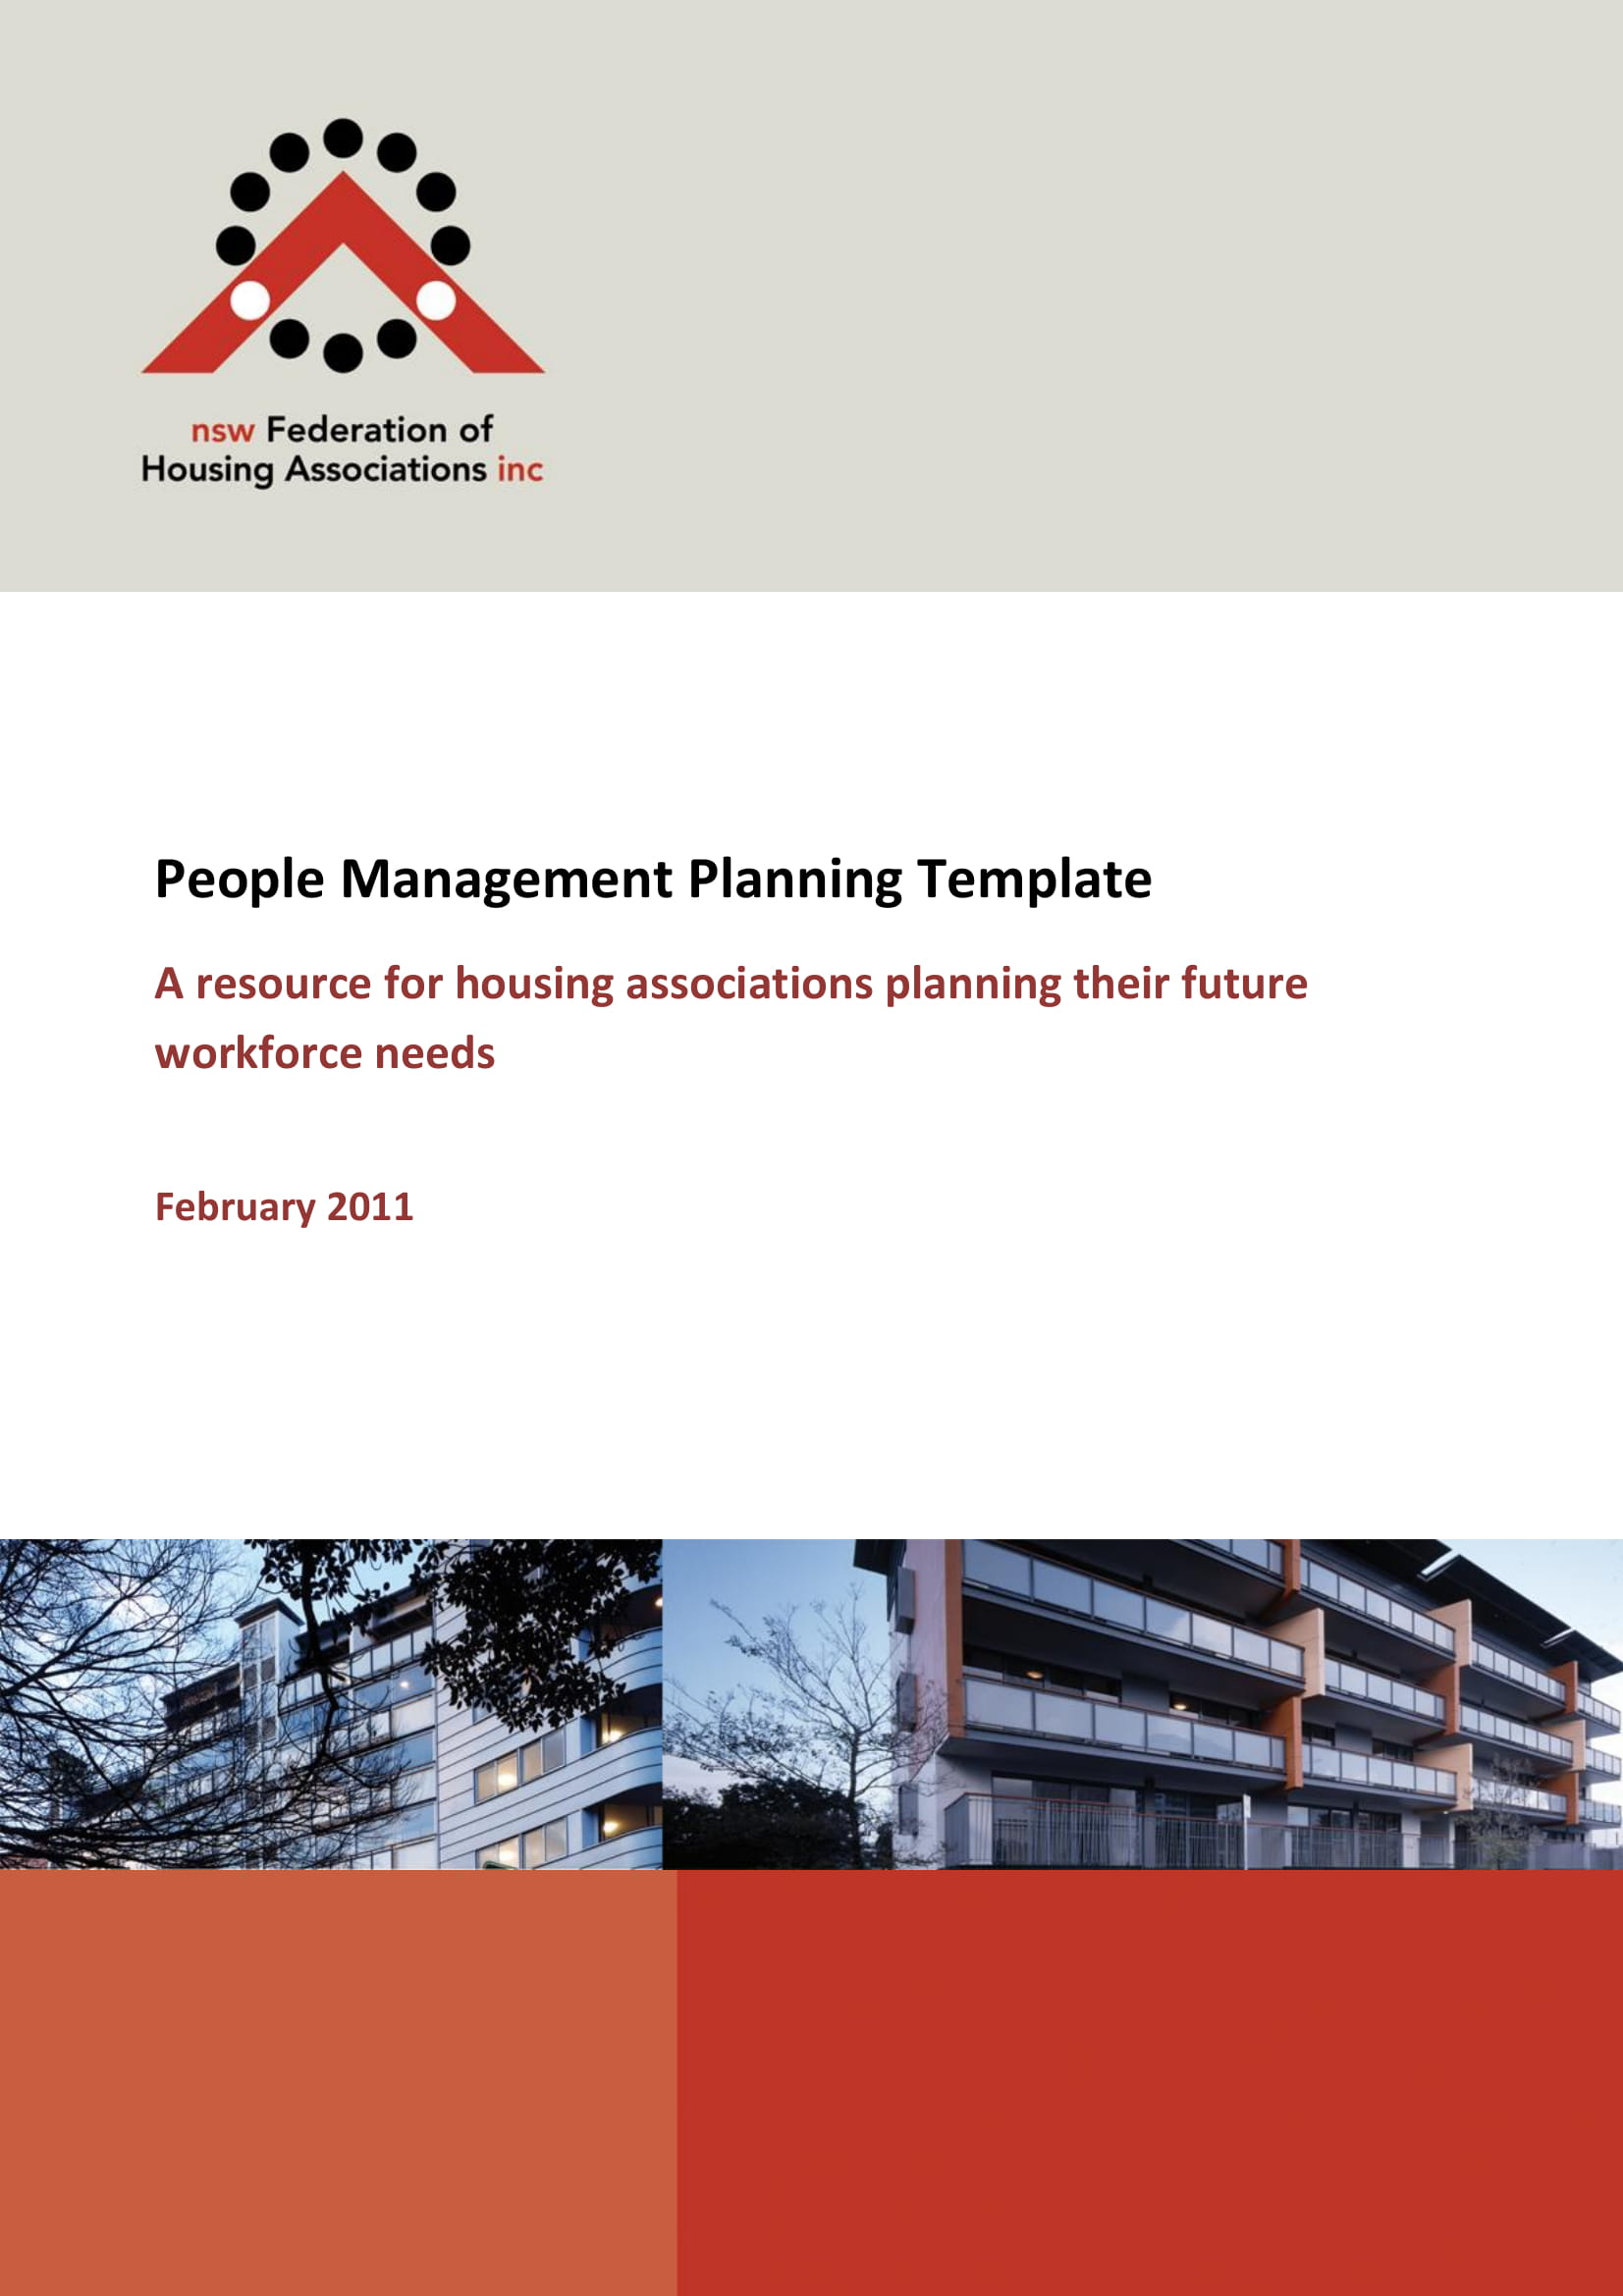 people management planning template example